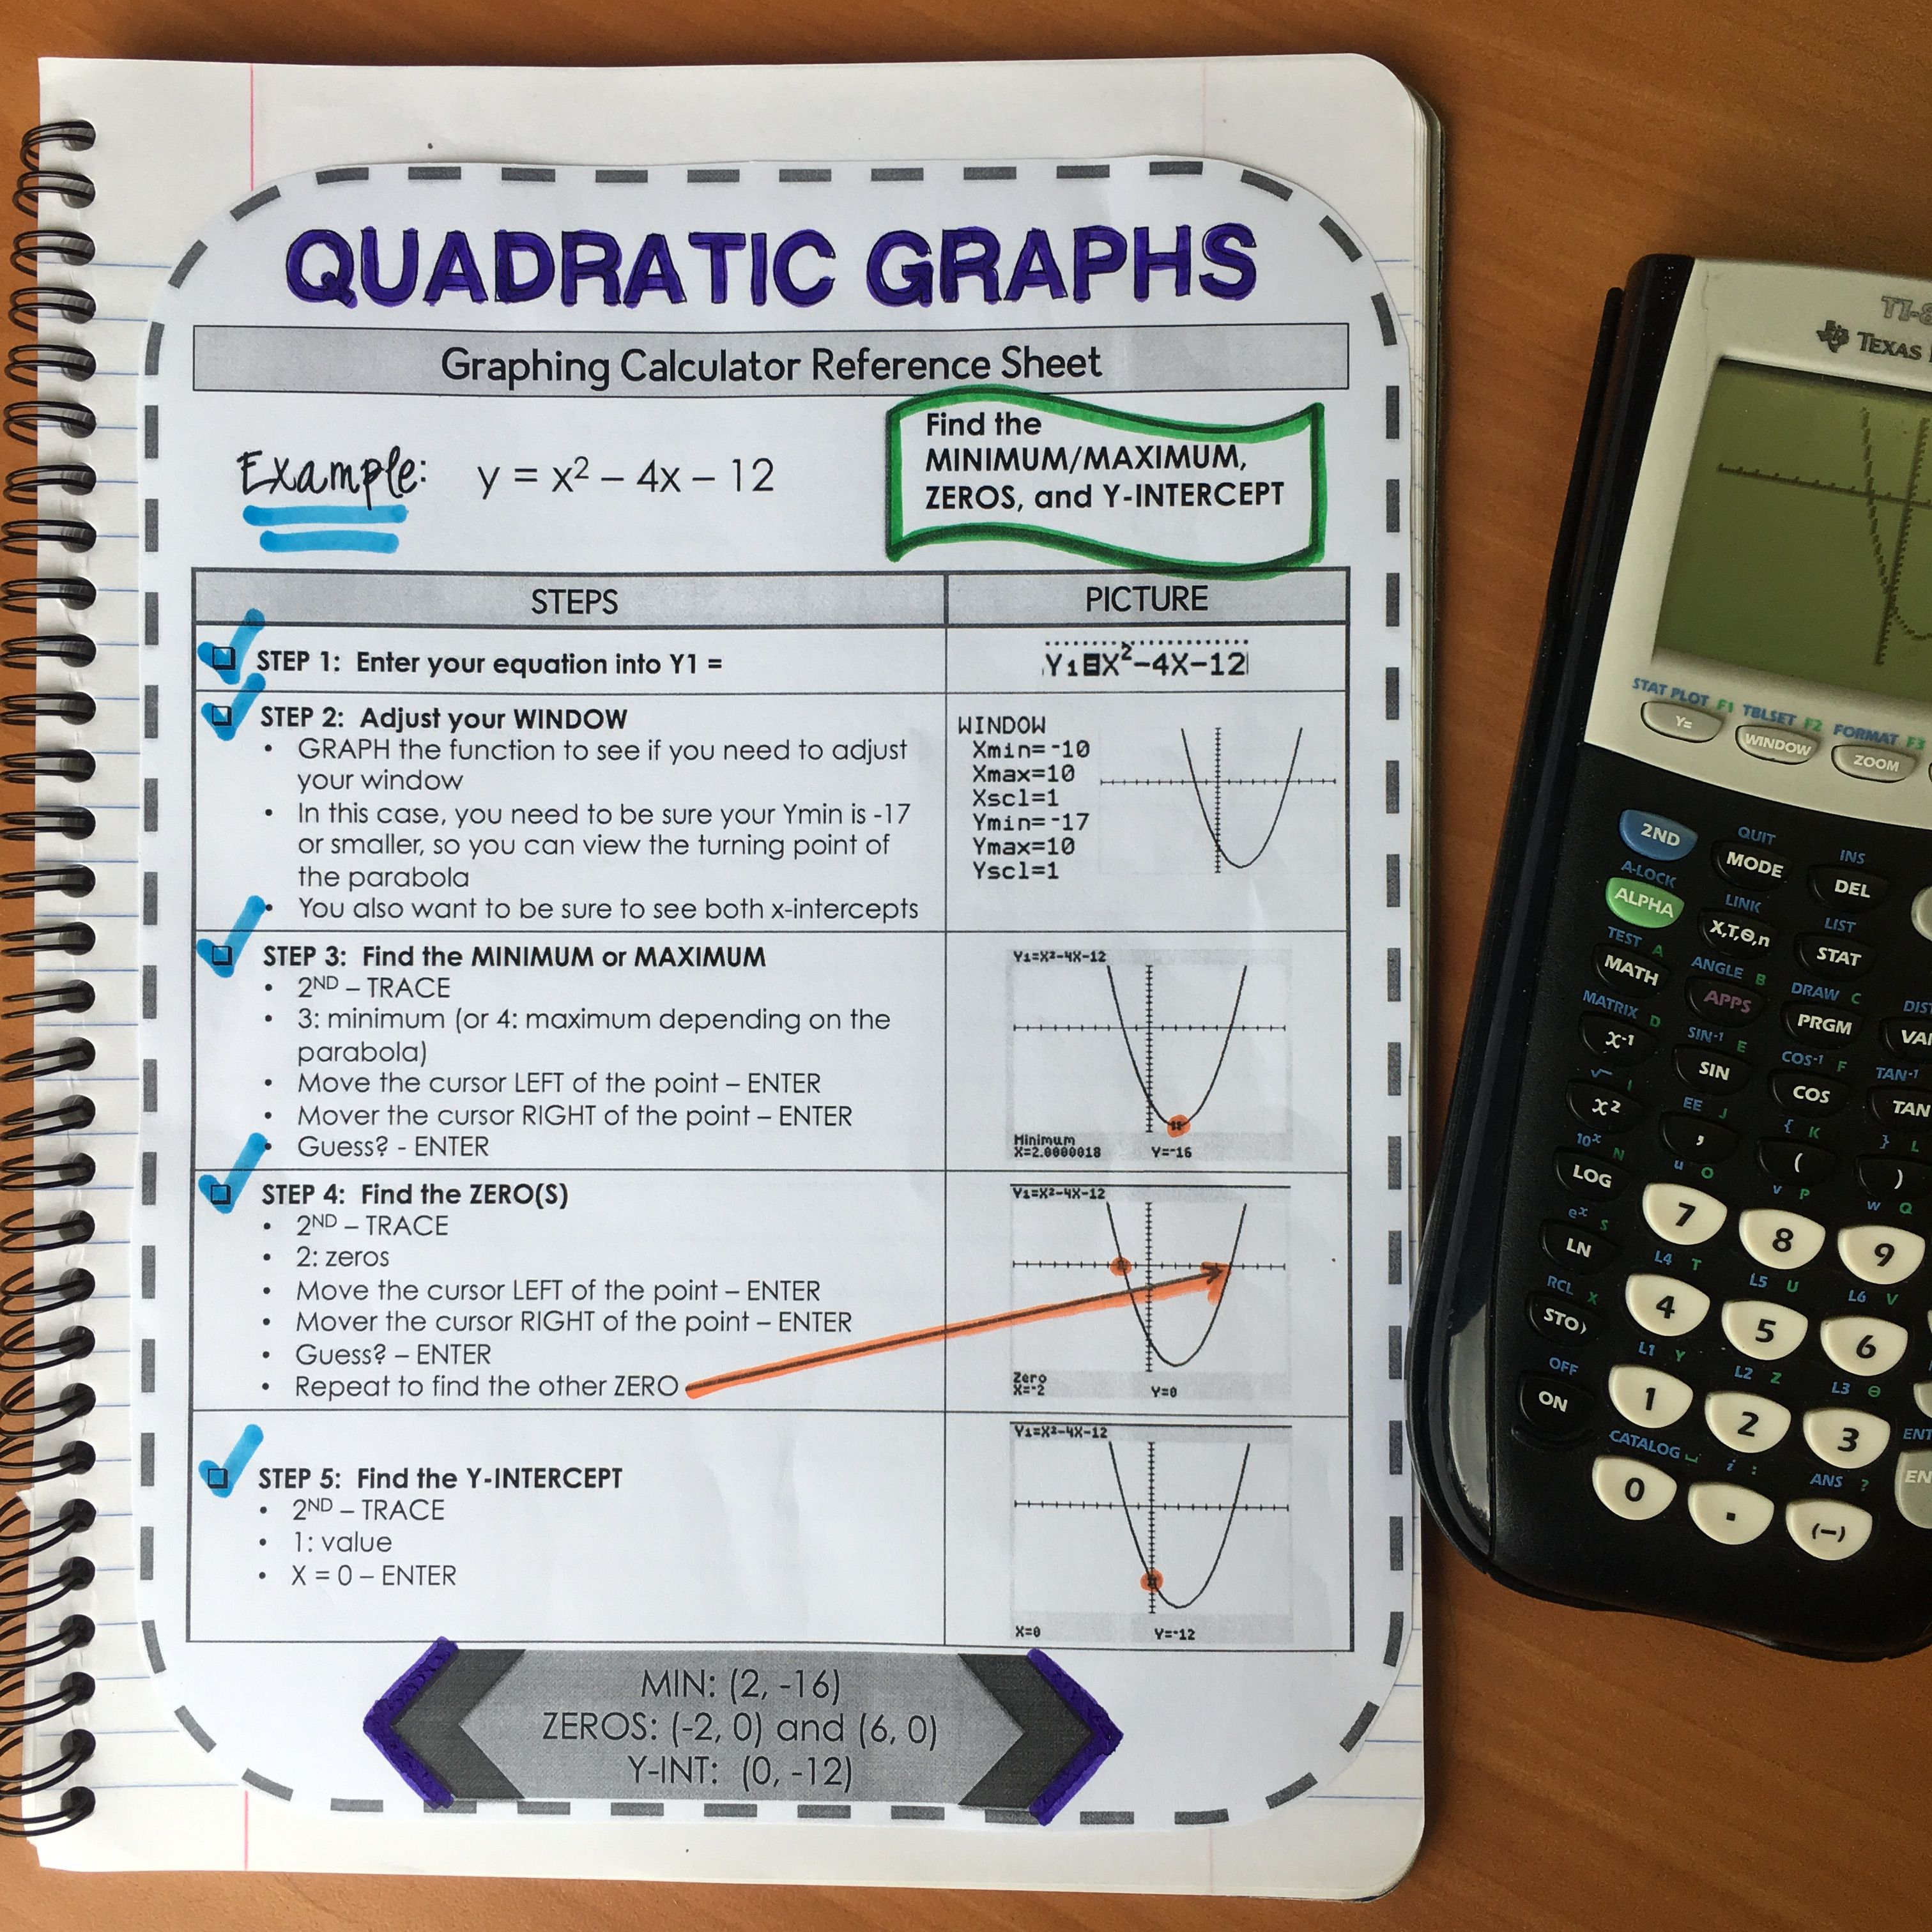 Graphing Calculator Reference Sheet Quadratic Graphs